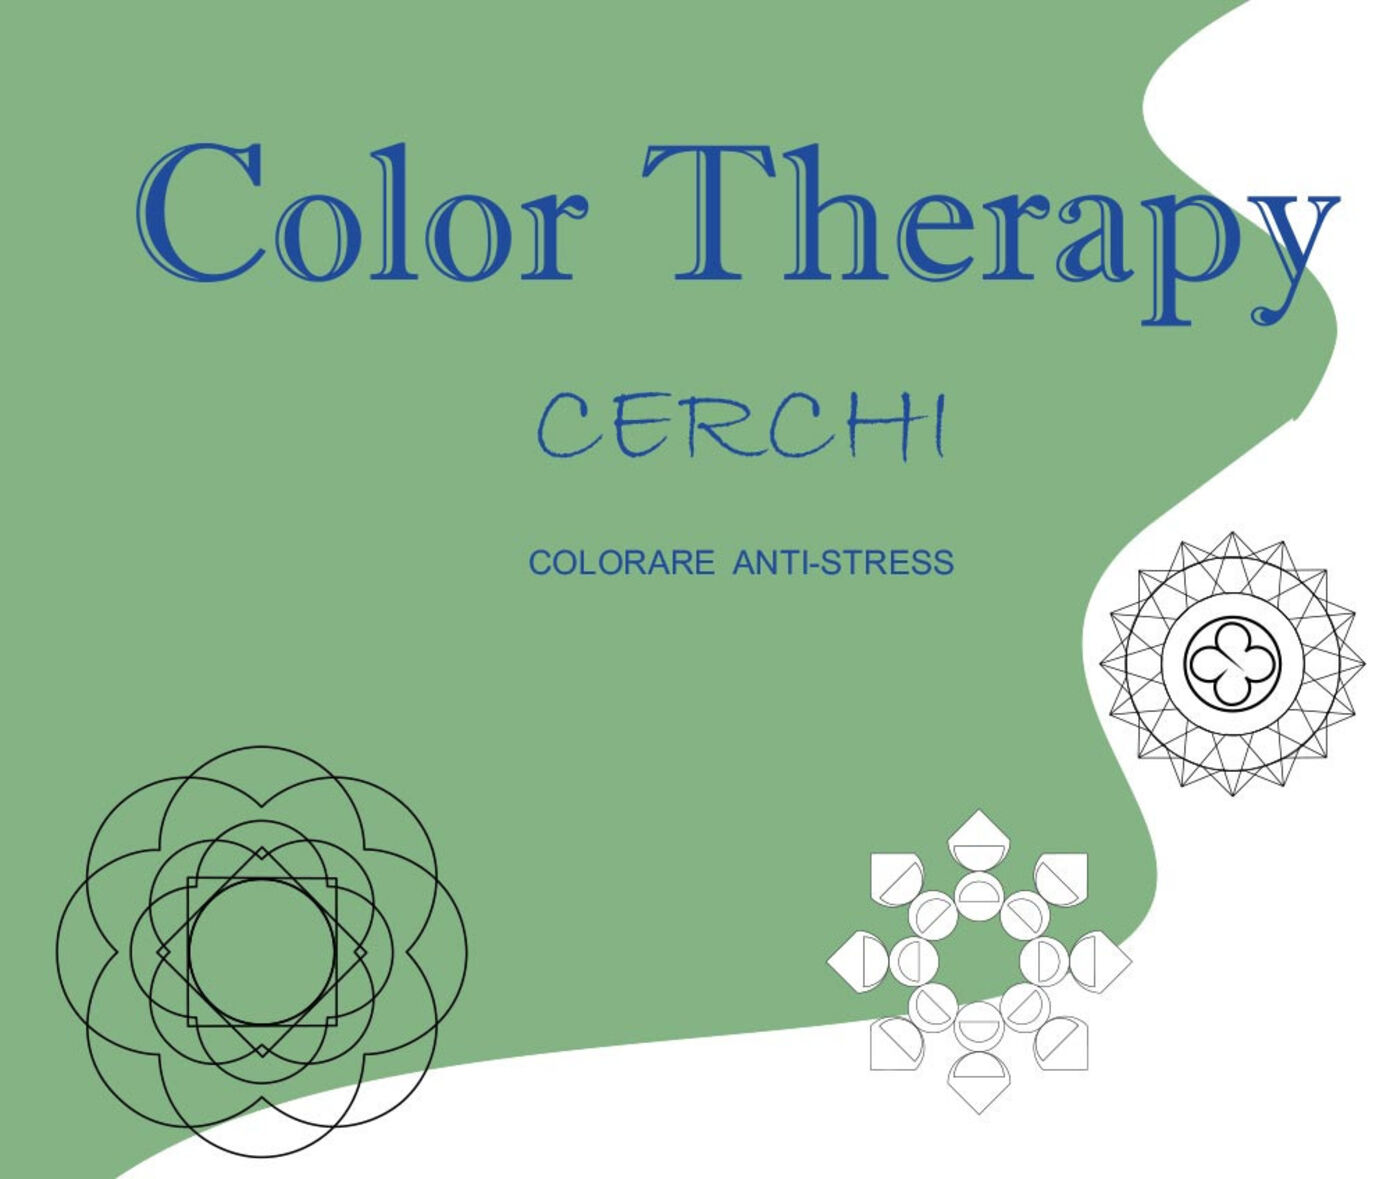 Cerchi. Color therapy